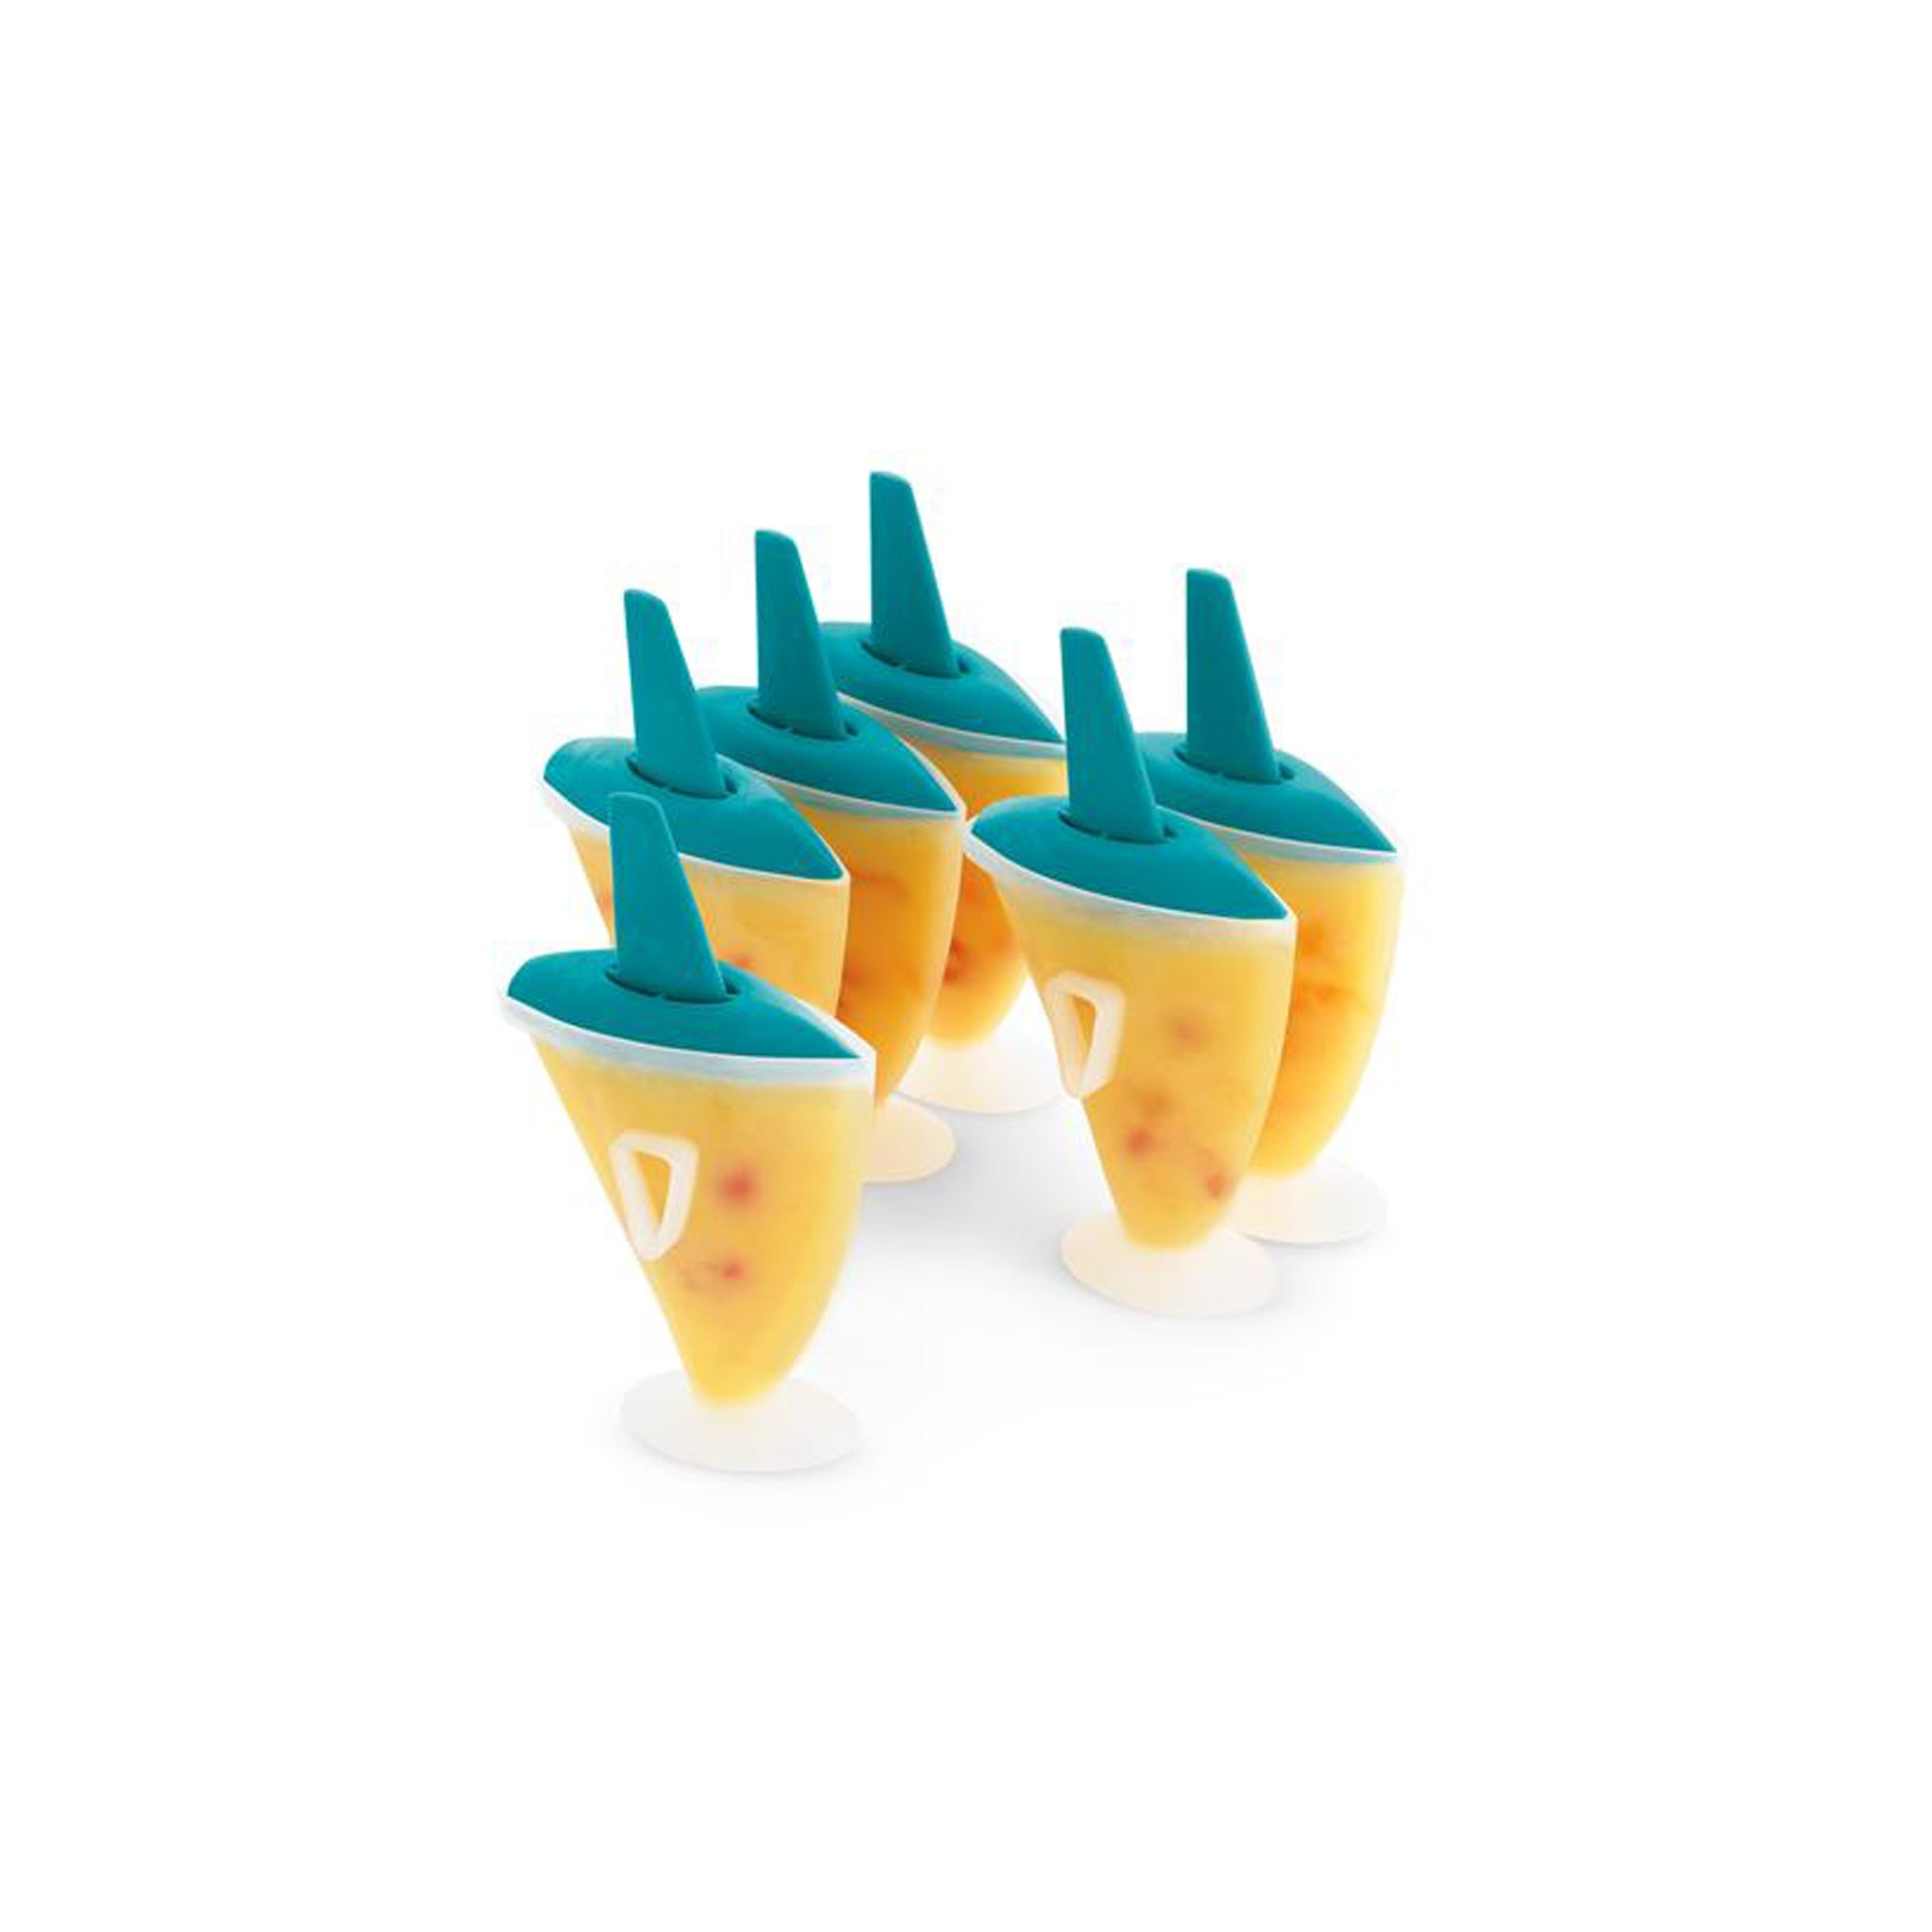 Snap-Fit Sailboat Pop Molds